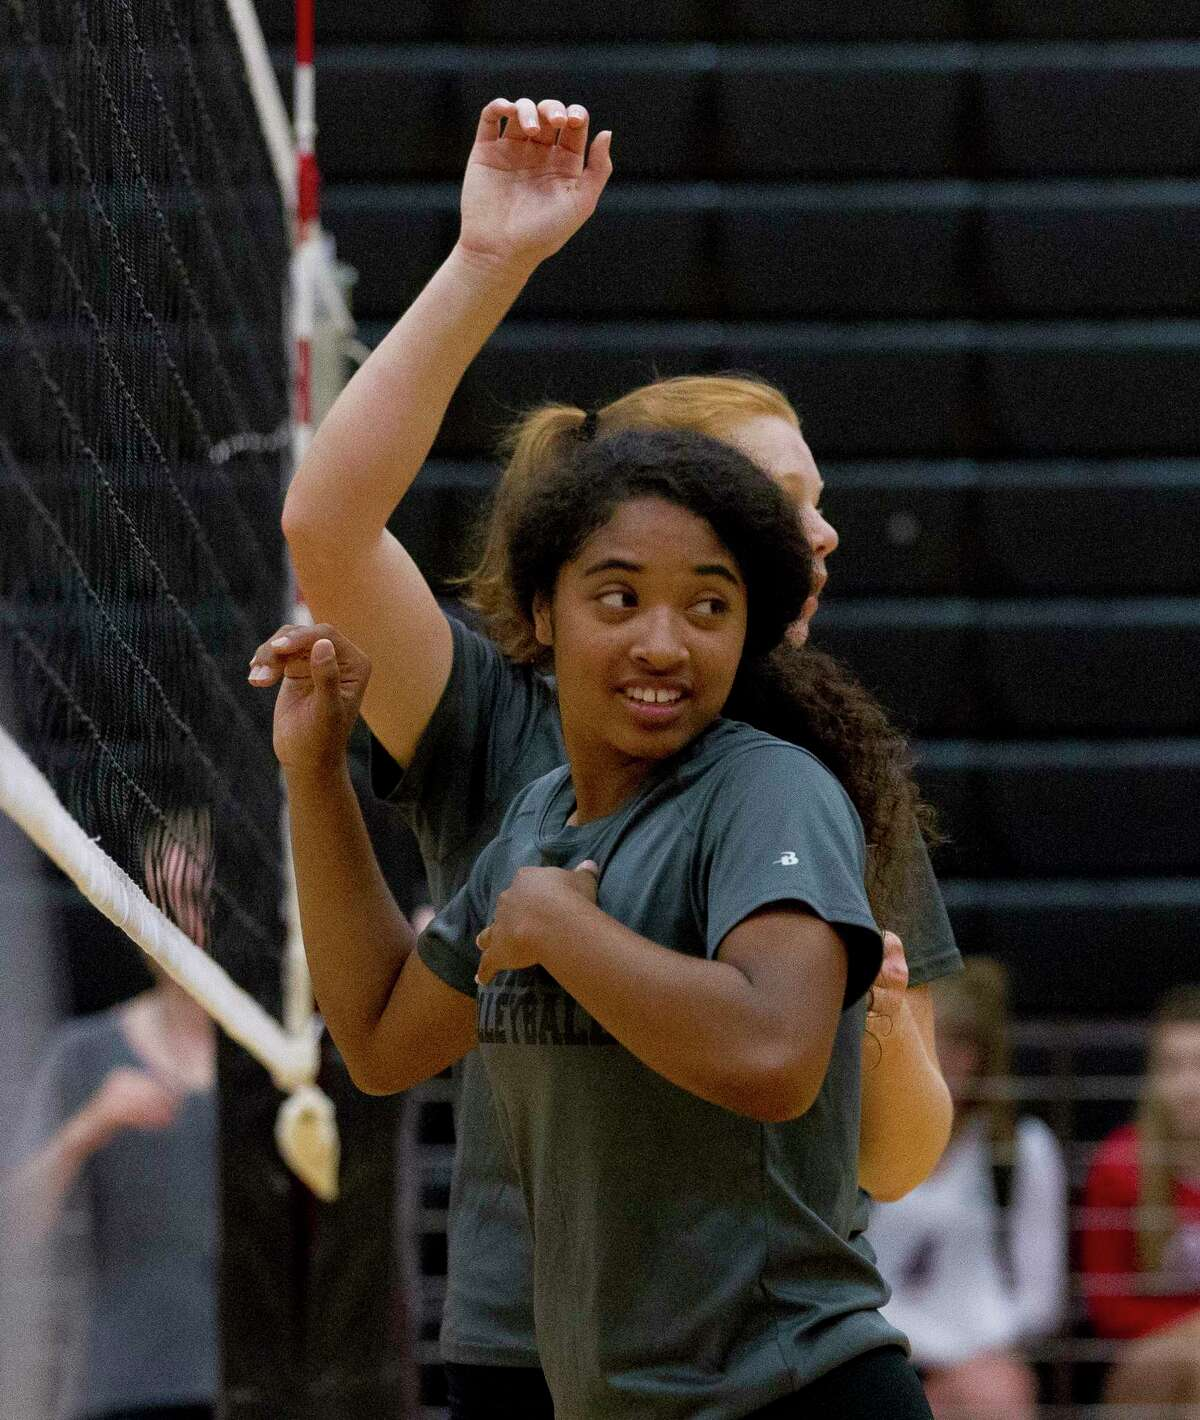 Jazzmin Kim waits for a serve at the net with Jozy Rodel during a high school volleyball scrimmage at Porter High School, Friday, Aug. 4, 2017, in Porter.